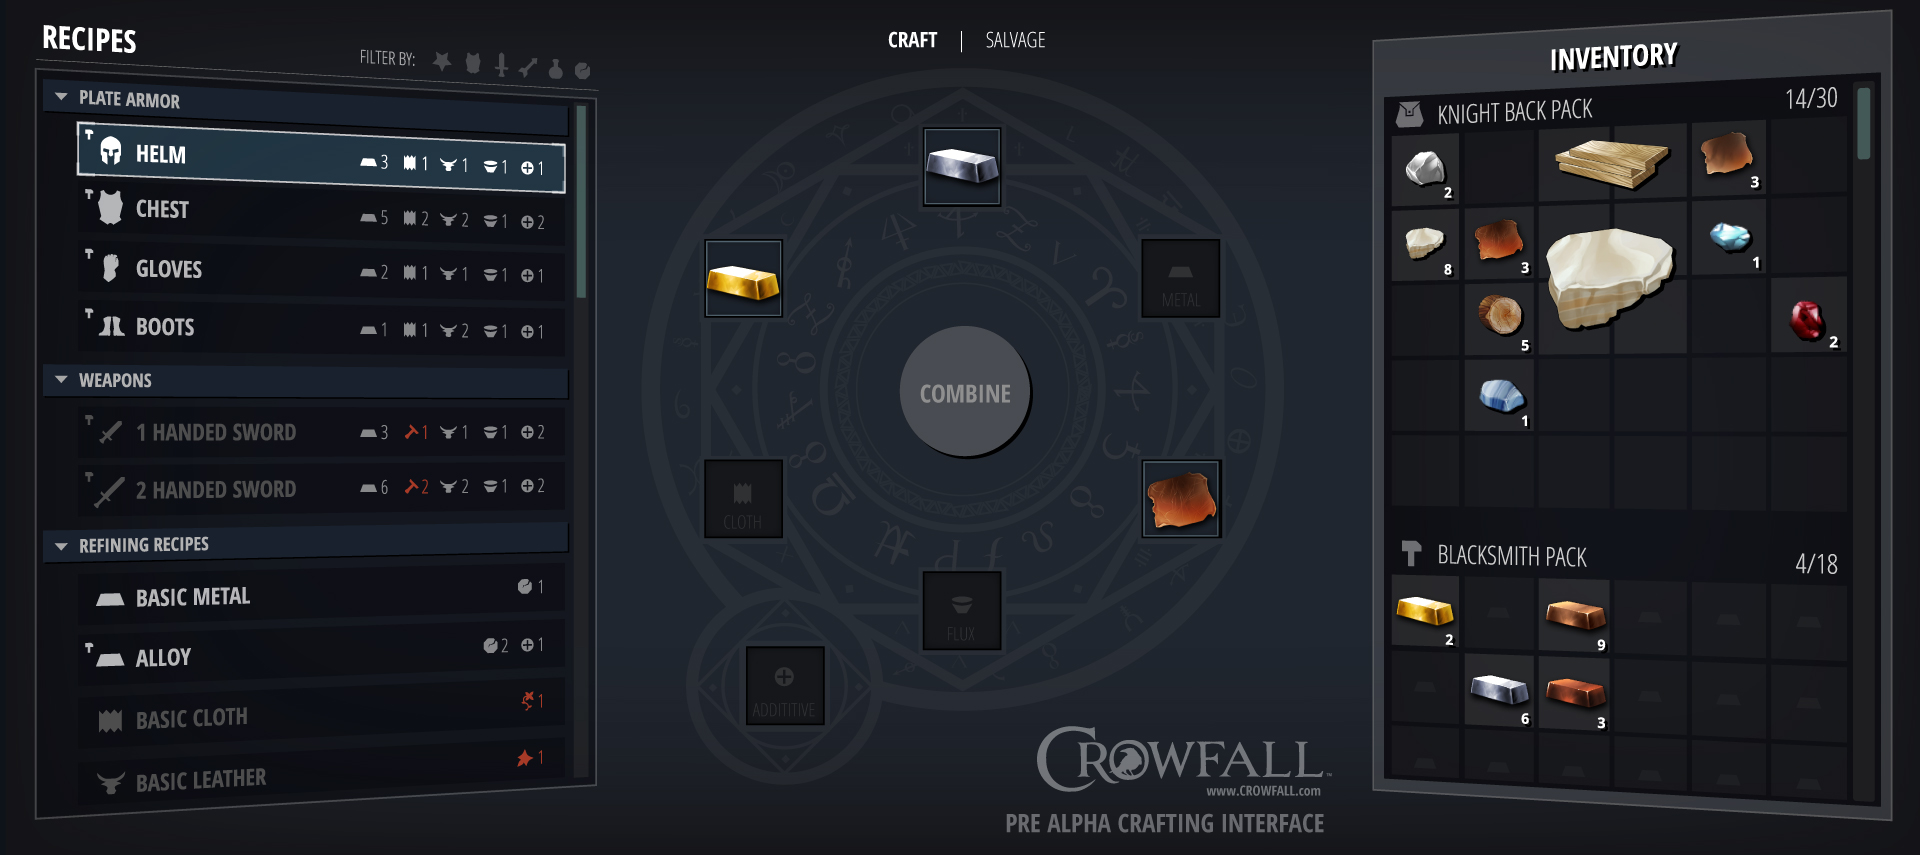 Pre Alpha Crafting Interface